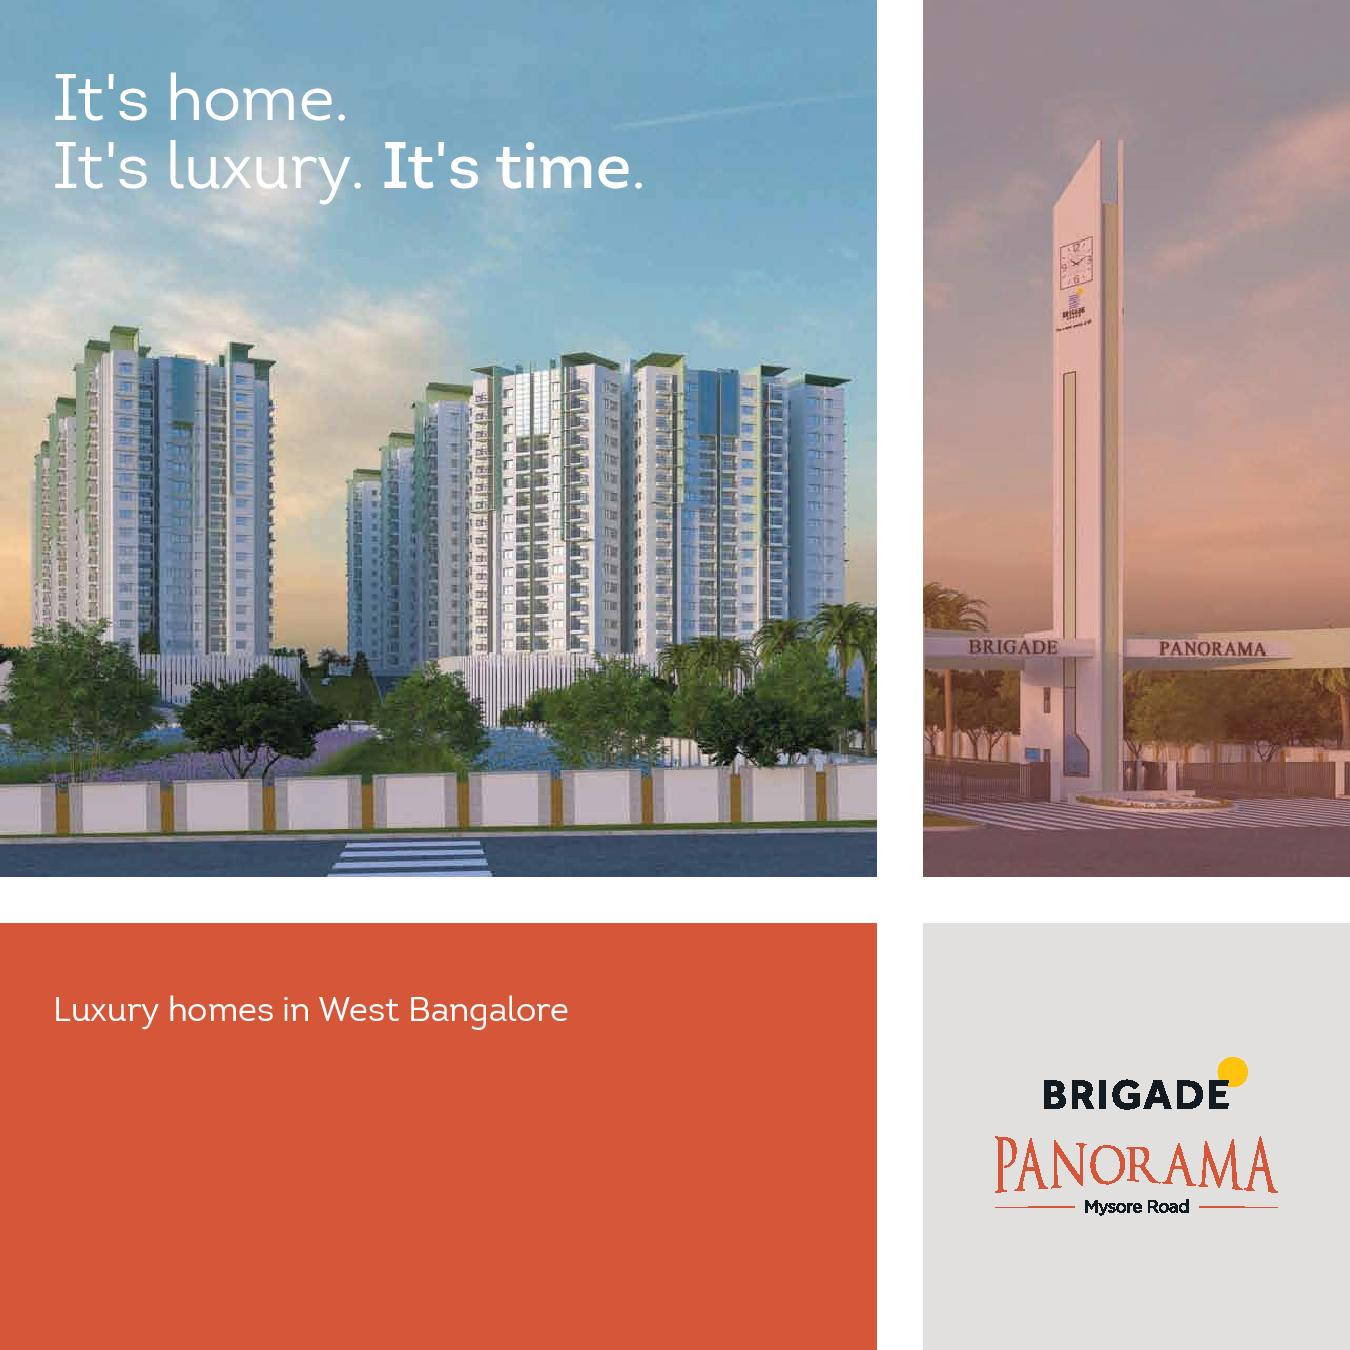 India Property - New Projects In India - Property In India: Brigades ...